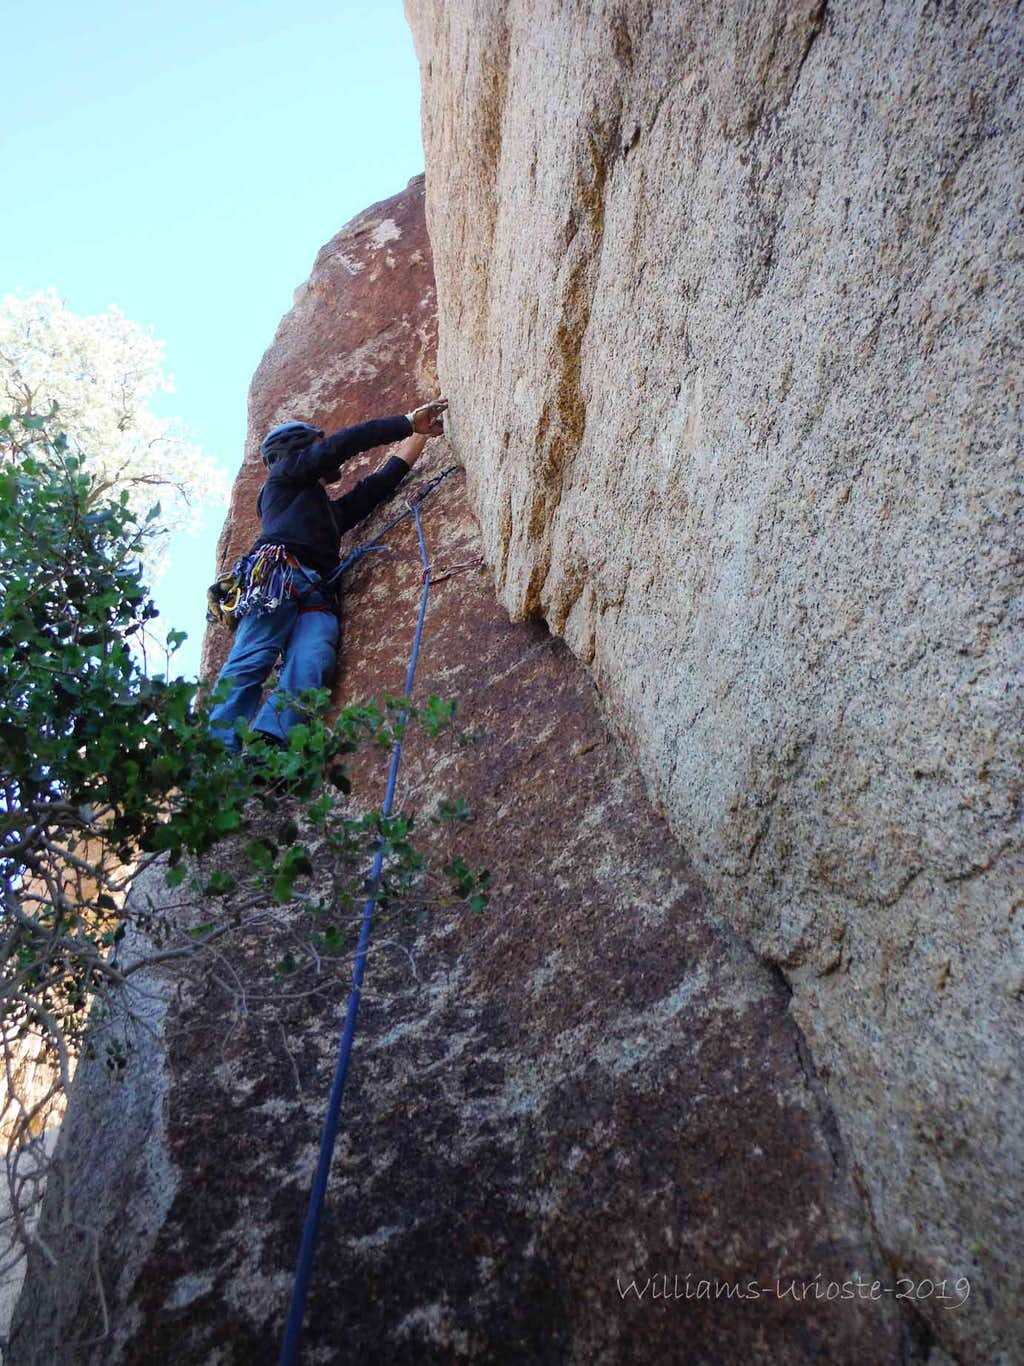 Heavy Gold, 5.10a